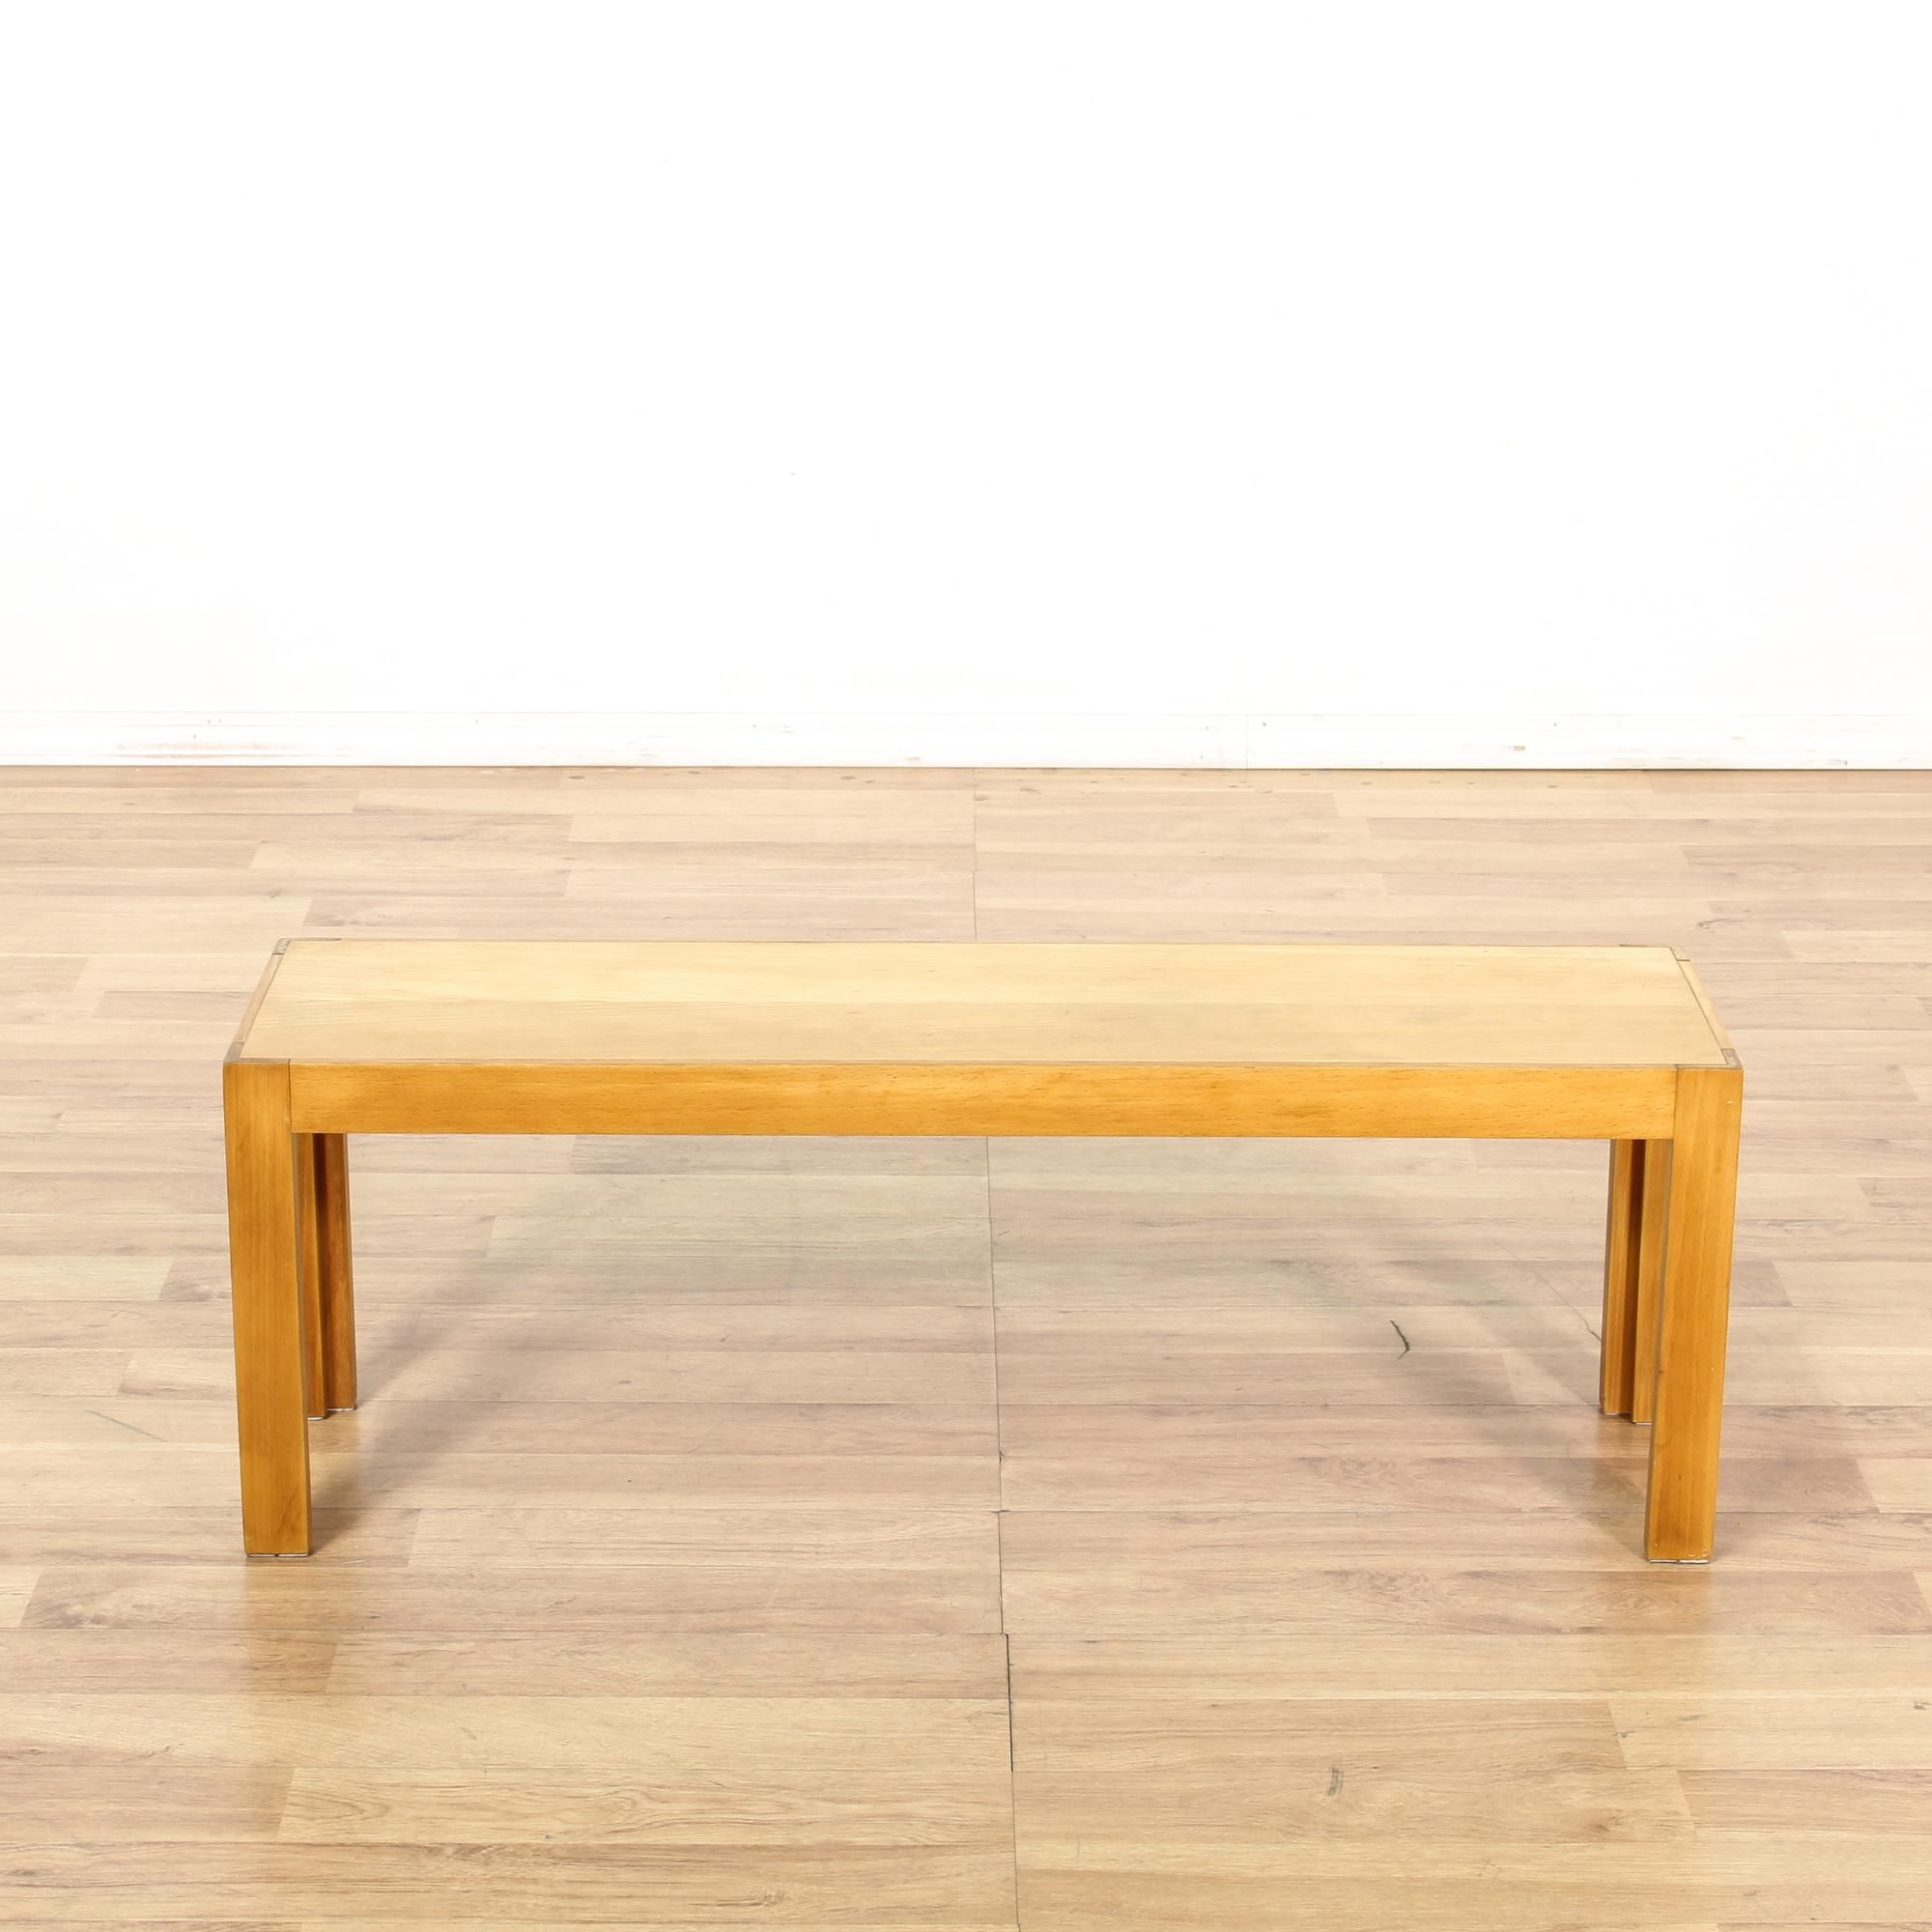 This mid century modern coffee table is featured in a solid wood